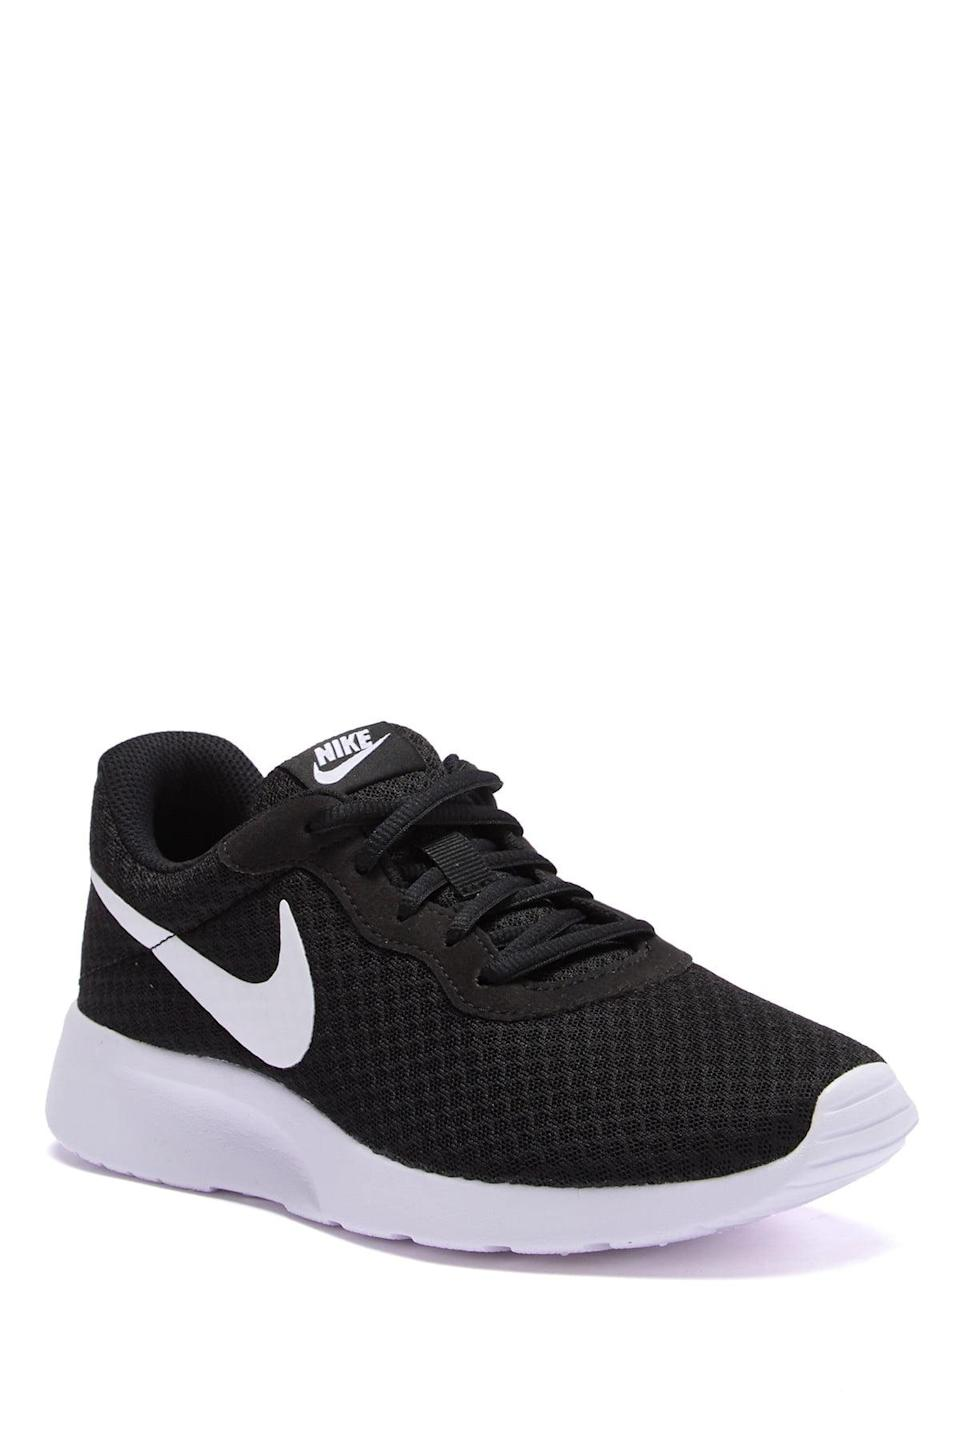 "<h2>Nike</h2><br>Nike Tanjun and Revolution 5 sneakers are up to 23% off. Take a peek at the activewear section too for discounts on joggers, sports bras, and more accessories.<br><br><em>Shop</em> <strong><em><a href=""https://www.nordstromrack.com/brands/Nike"" rel=""nofollow noopener"" target=""_blank"" data-ylk=""slk:Nike"" class=""link rapid-noclick-resp"">Nike</a></em></strong><br><br><strong>Nike</strong> Tanjun Sneaker, $, available at <a href=""https://go.skimresources.com/?id=30283X879131&url=https%3A%2F%2Fwww.nordstromrack.com%2Fs%2Fnike-tanjun-sneaker%2Fn2052319"" rel=""nofollow noopener"" target=""_blank"" data-ylk=""slk:Nordstrom Rack"" class=""link rapid-noclick-resp"">Nordstrom Rack</a>"